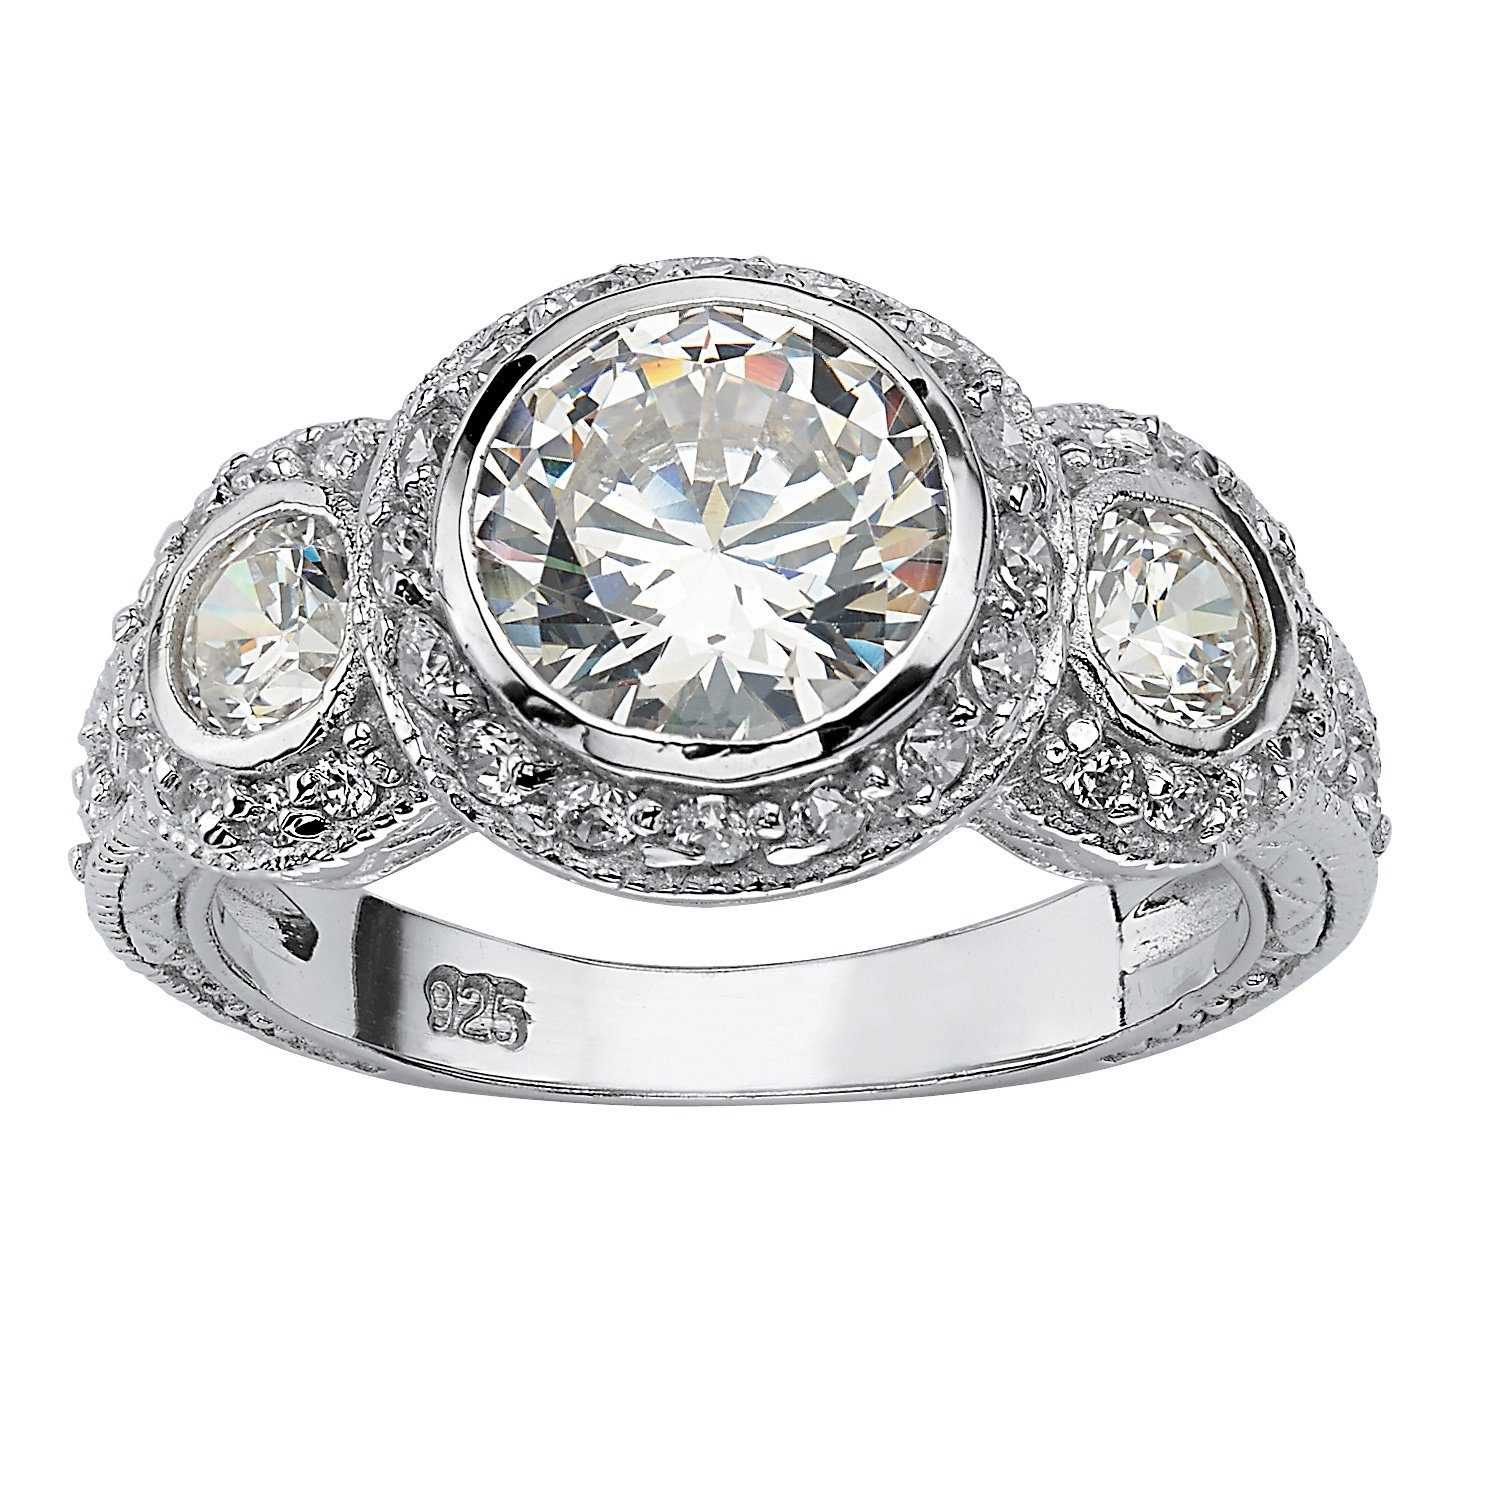 Sterling Silver Round Cubic Zirconia Bezel Set Vintage Style 3-Stone Bridal Ring Size 7